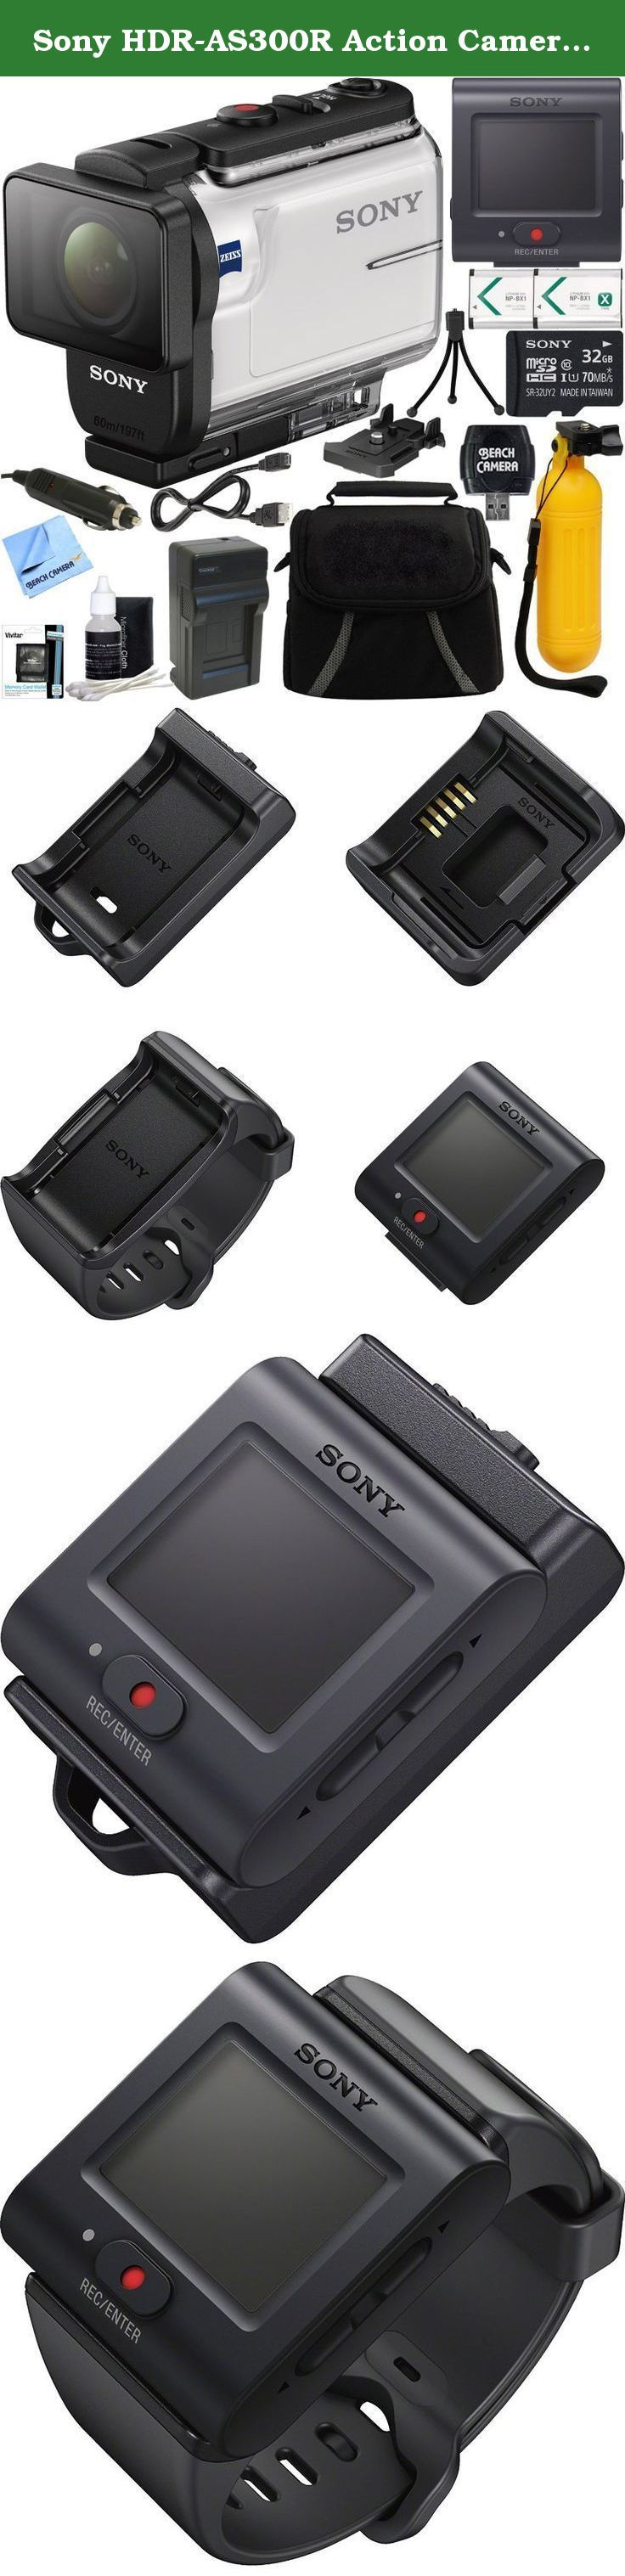 Sony HDR-AS300R Action Camera + Live View Remote & 32GB Accessory Bundle. Stunningly stable images with Balanced Optical SteadyShot. Make Full HD POV movies of travel and everyday fun. Capture stable images as never before with Balanced Optical SteadyShot. Shoot anywhere with Action Cam real-world rugged design. Action Cam and Live-View Remote team up More than just wristwear, this compact new remote controller also doubles as a mountable controller for convenient use with many optional...